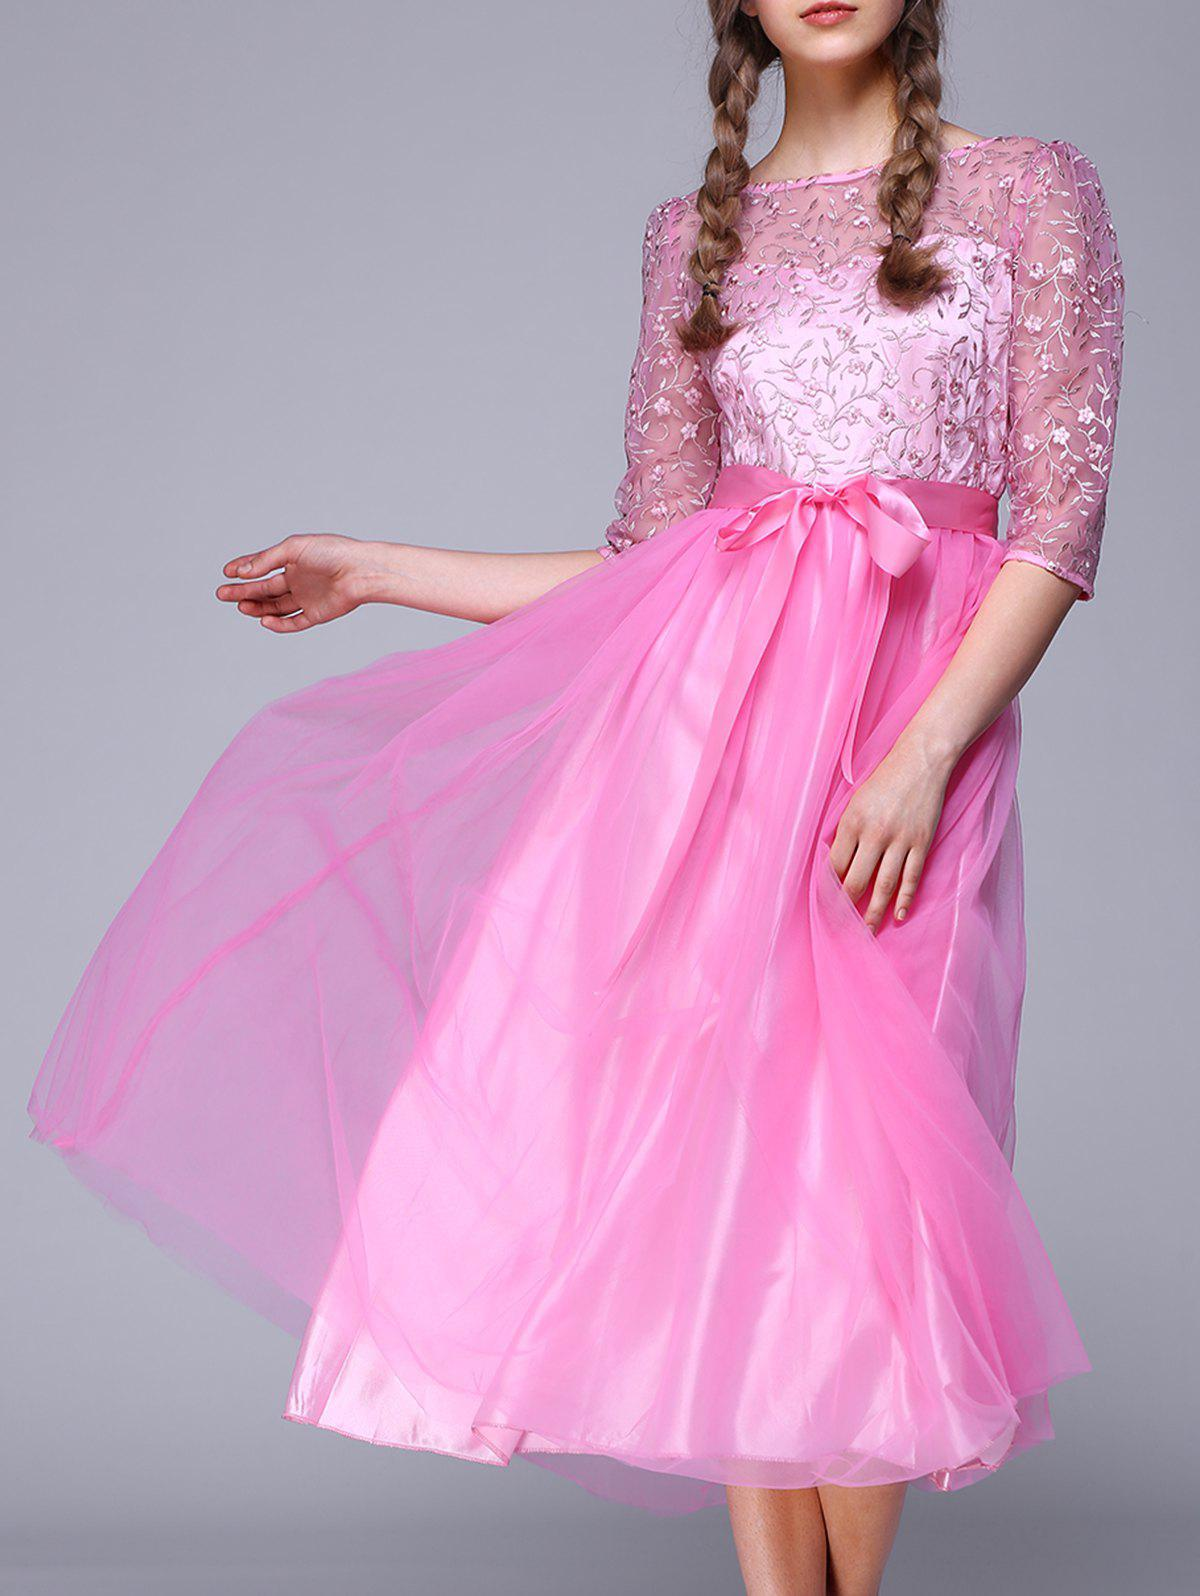 1/2 Sleeve See-Through Lace Splicing Embroidery Dress